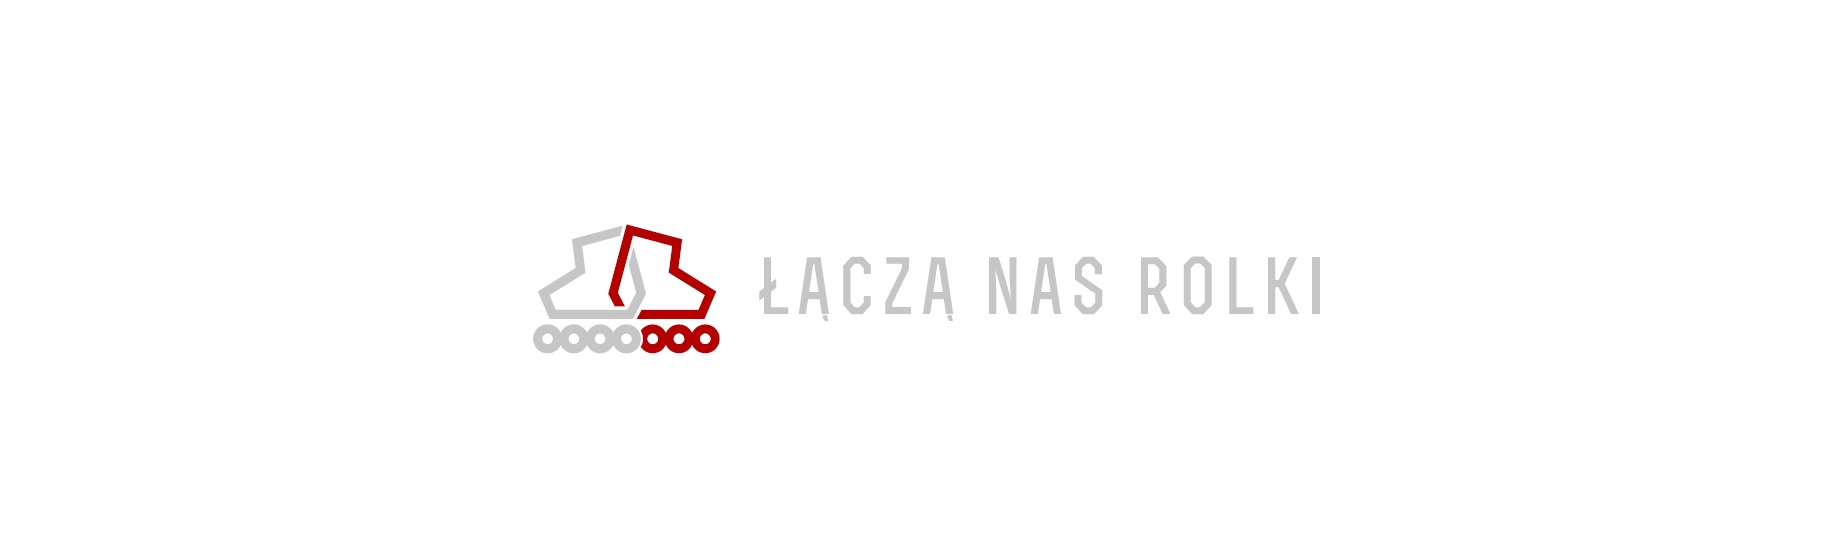 lnr logo long